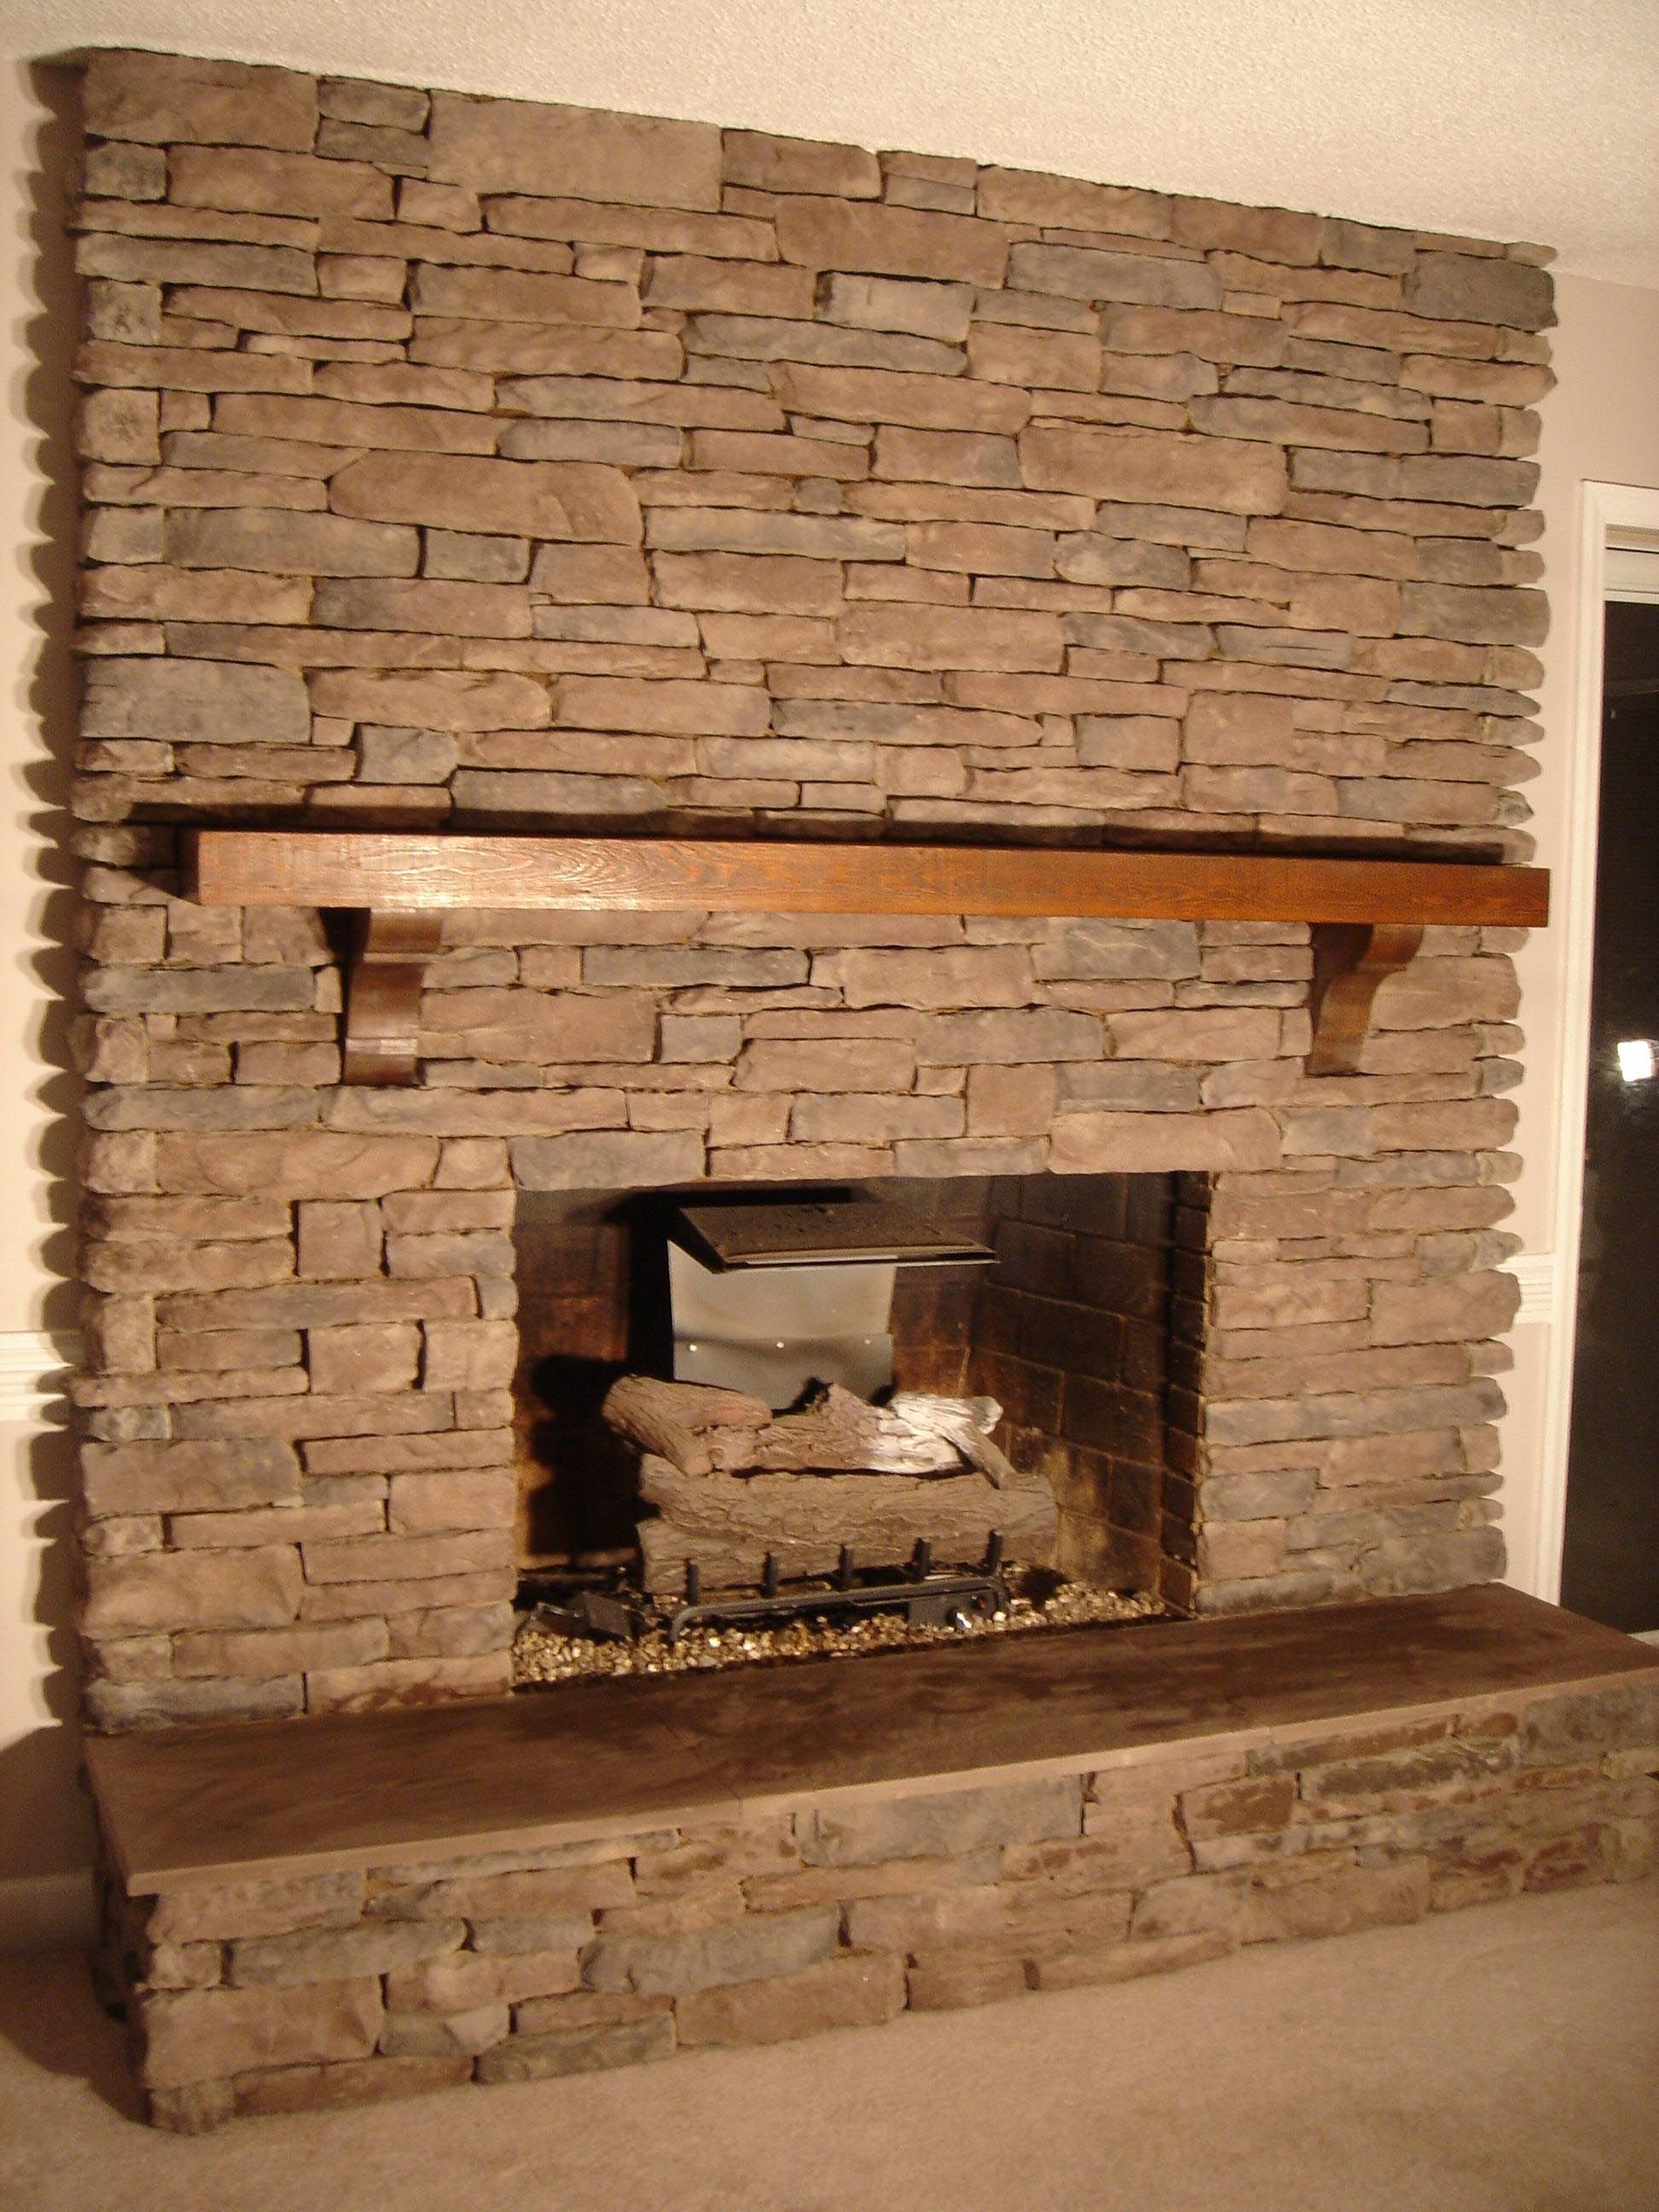 Stone Tile Fireplace Surround | Fireplace | Pinterest | Tiled ...